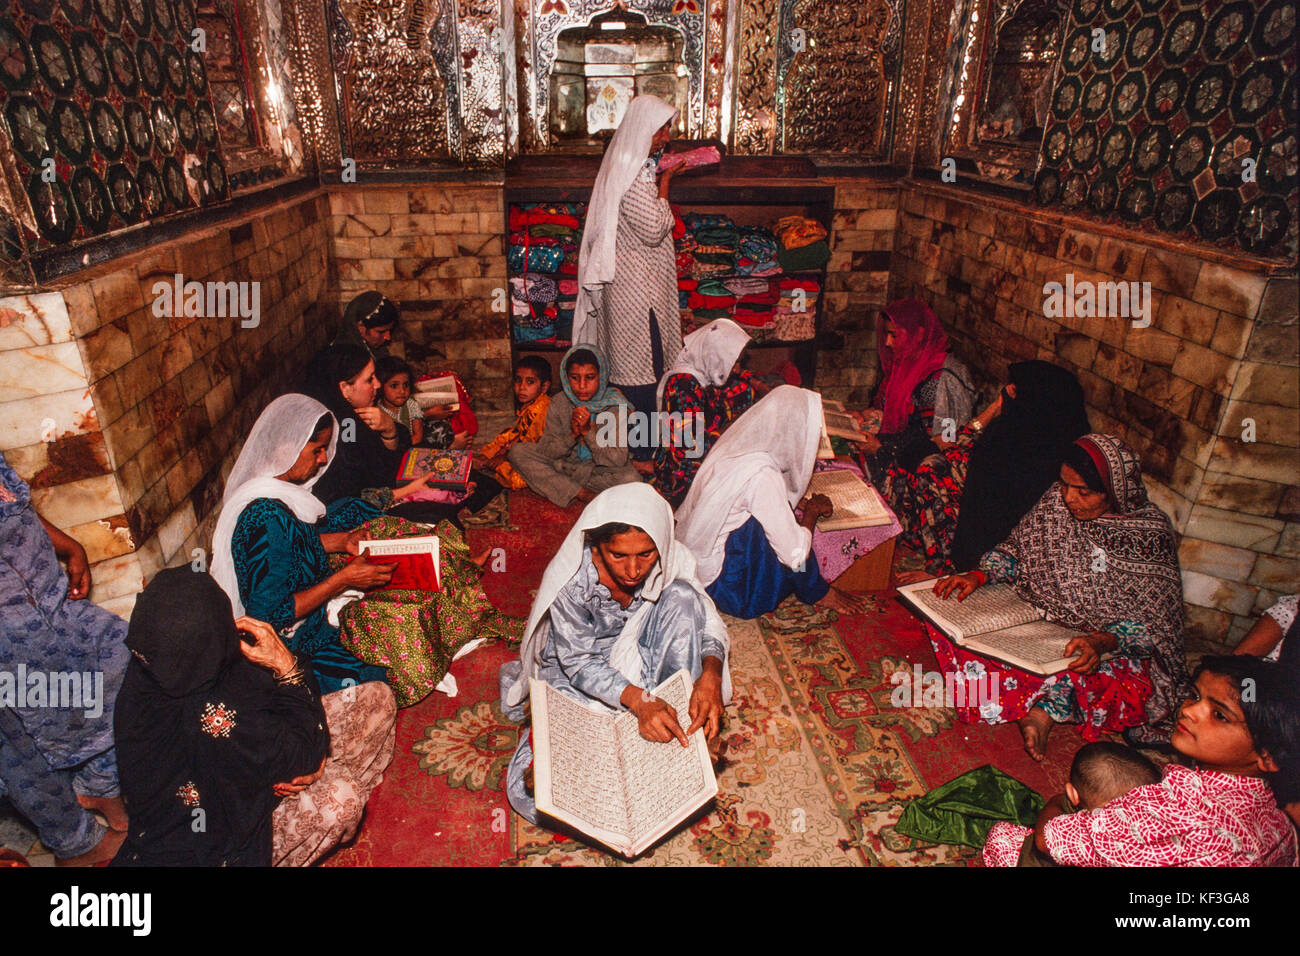 Women reciting the Quran at the Mausoleum of Lal Shahbaz Qalander, Sehwan Sharif, Sindh, Pakistan, 1990. - Stock Image